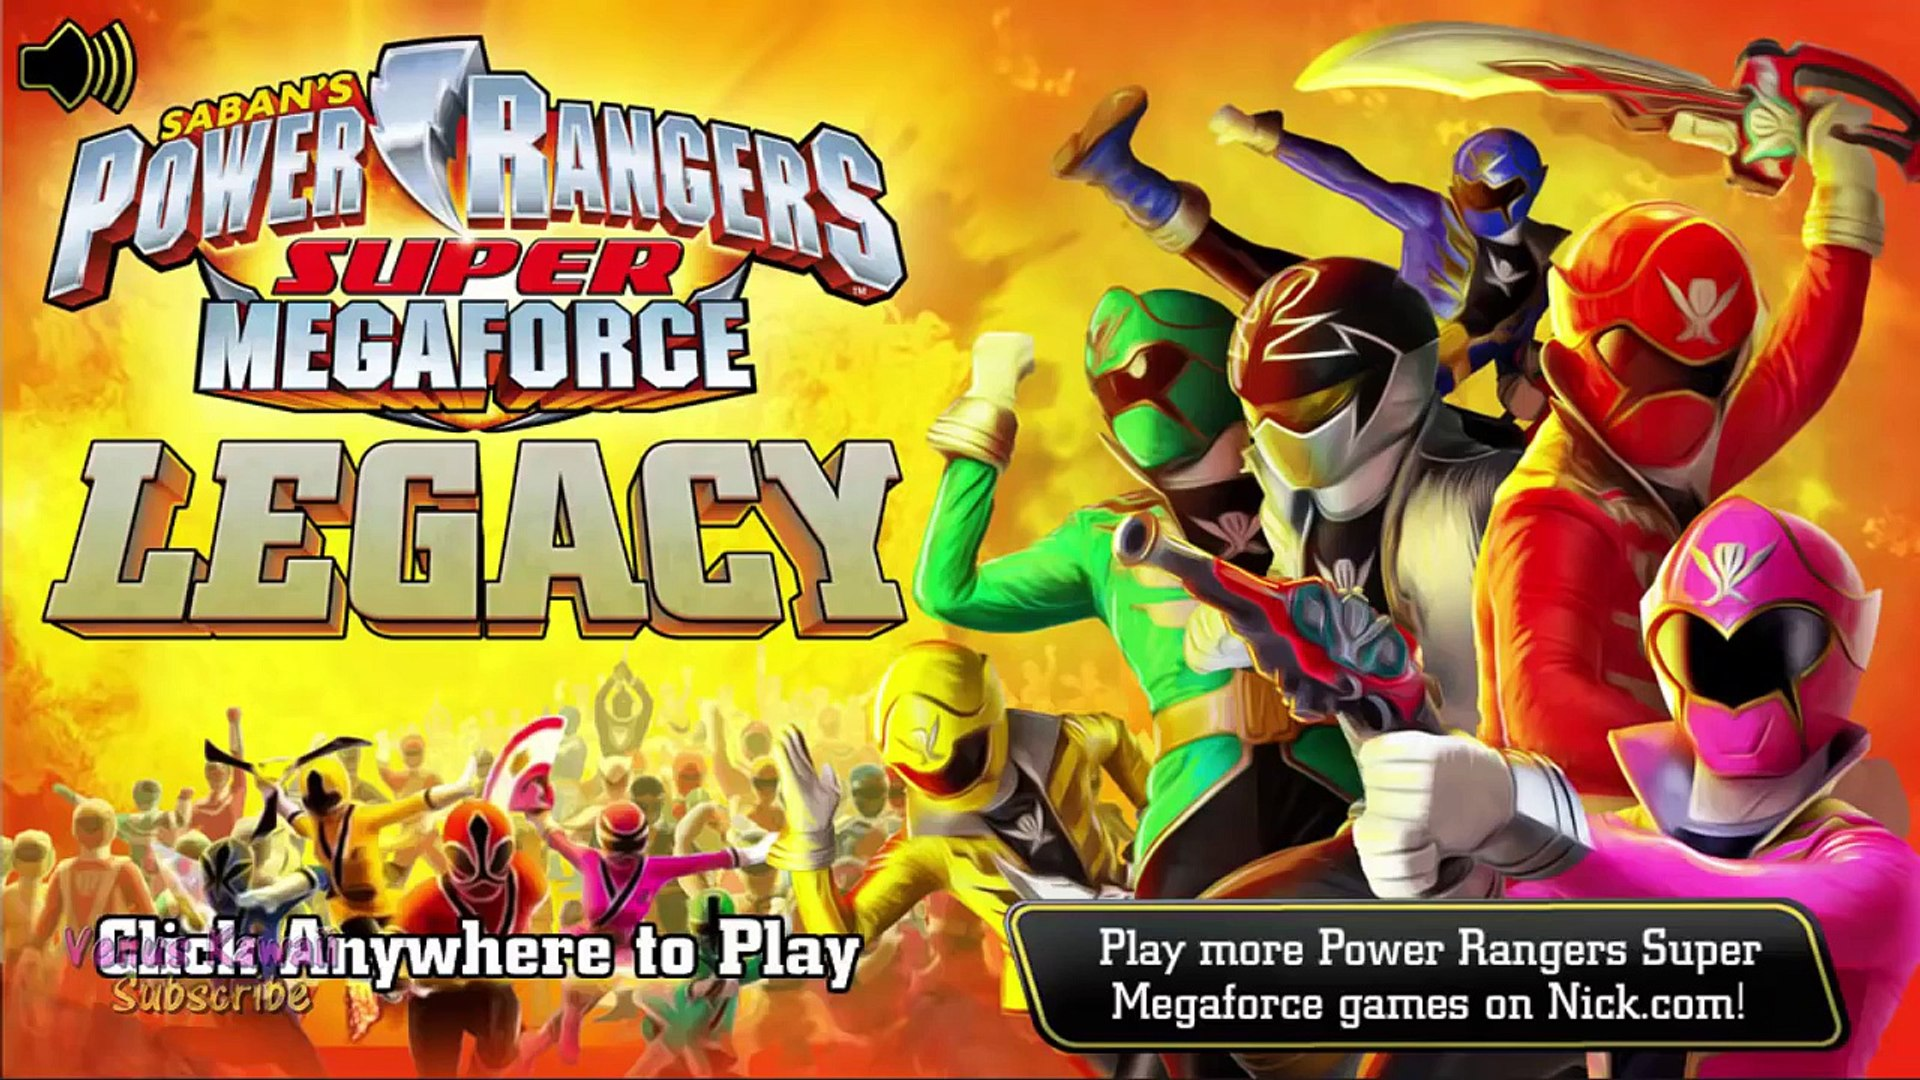 Power Rangers: Super Megaforce: Legacy Nick Games